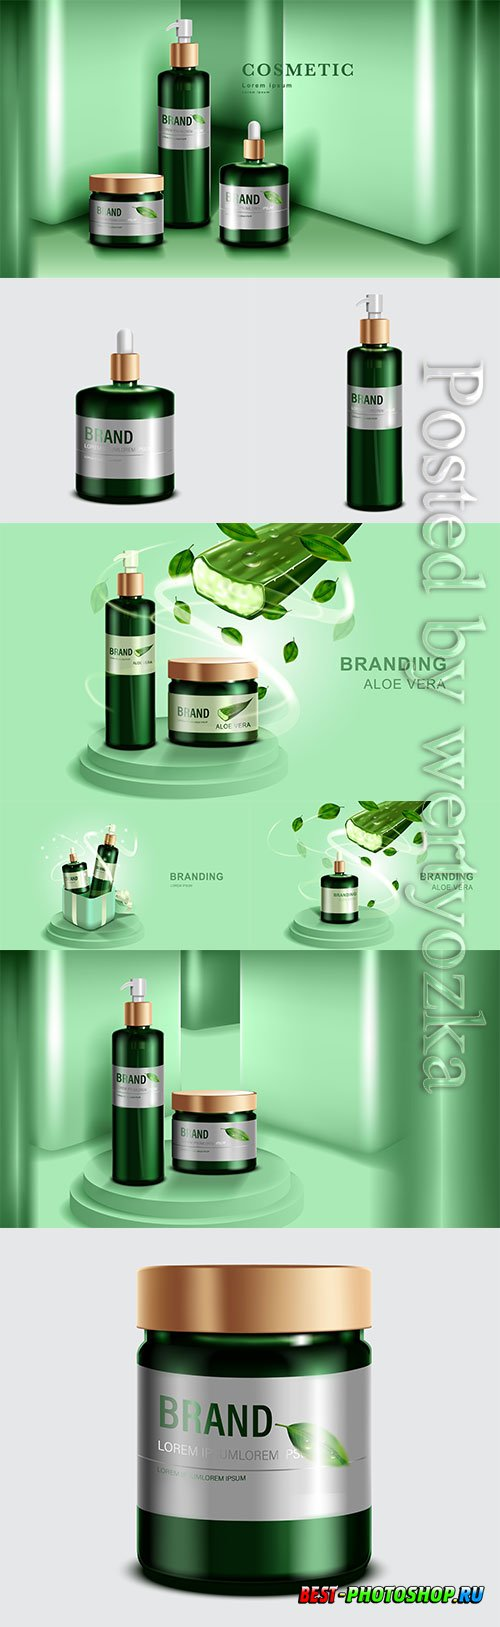 Cosmetics or skincare product, green bottle and green wall background